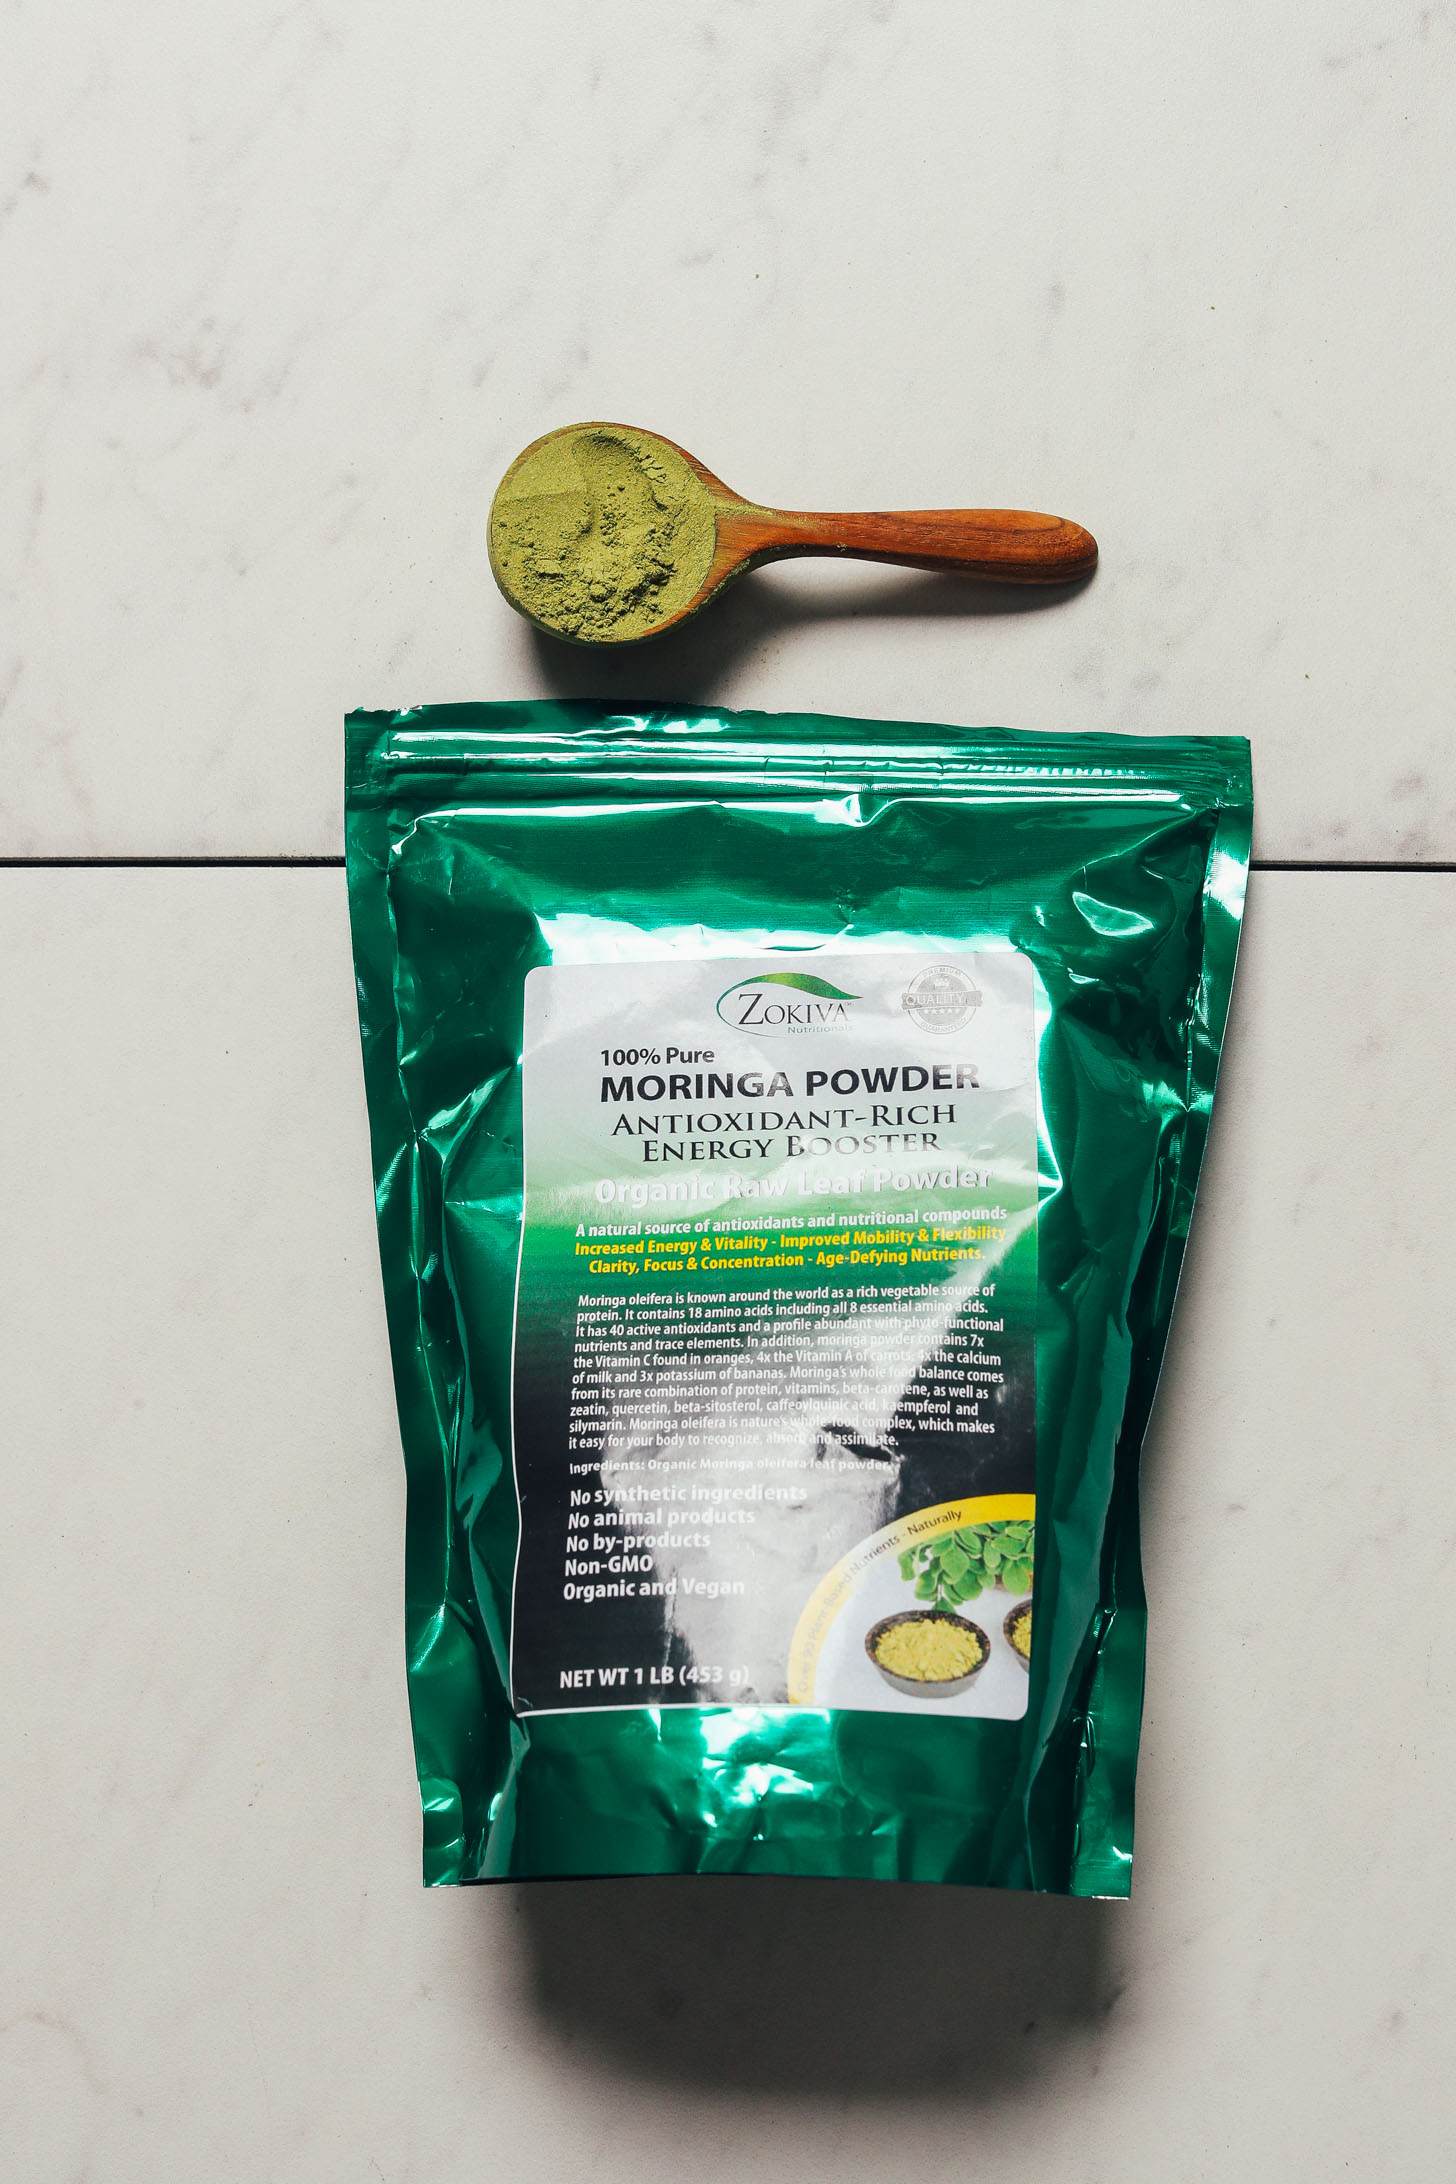 Bag of Zokiva Moringa Powder for our review of the best brands of moringa powder